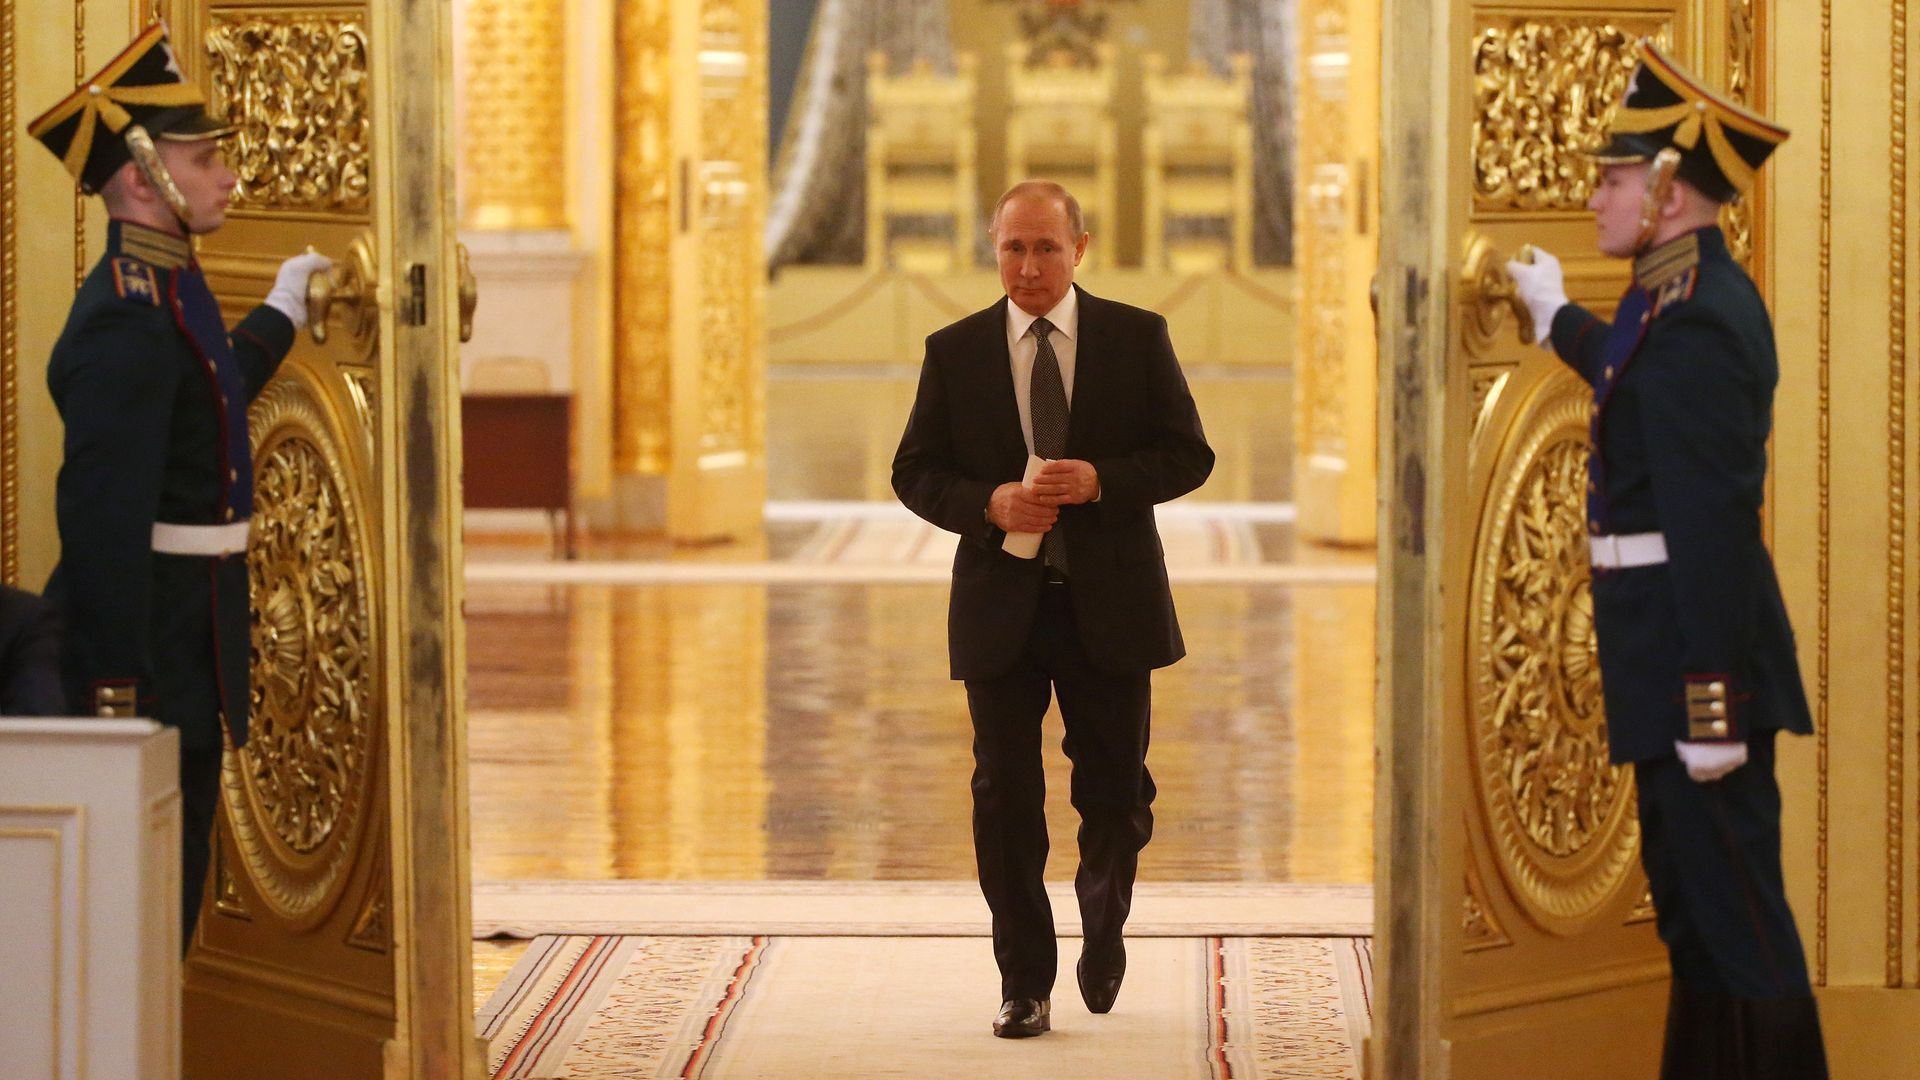 Vladimir Putin walks through golden doors at the Grand Kremlin Palace.